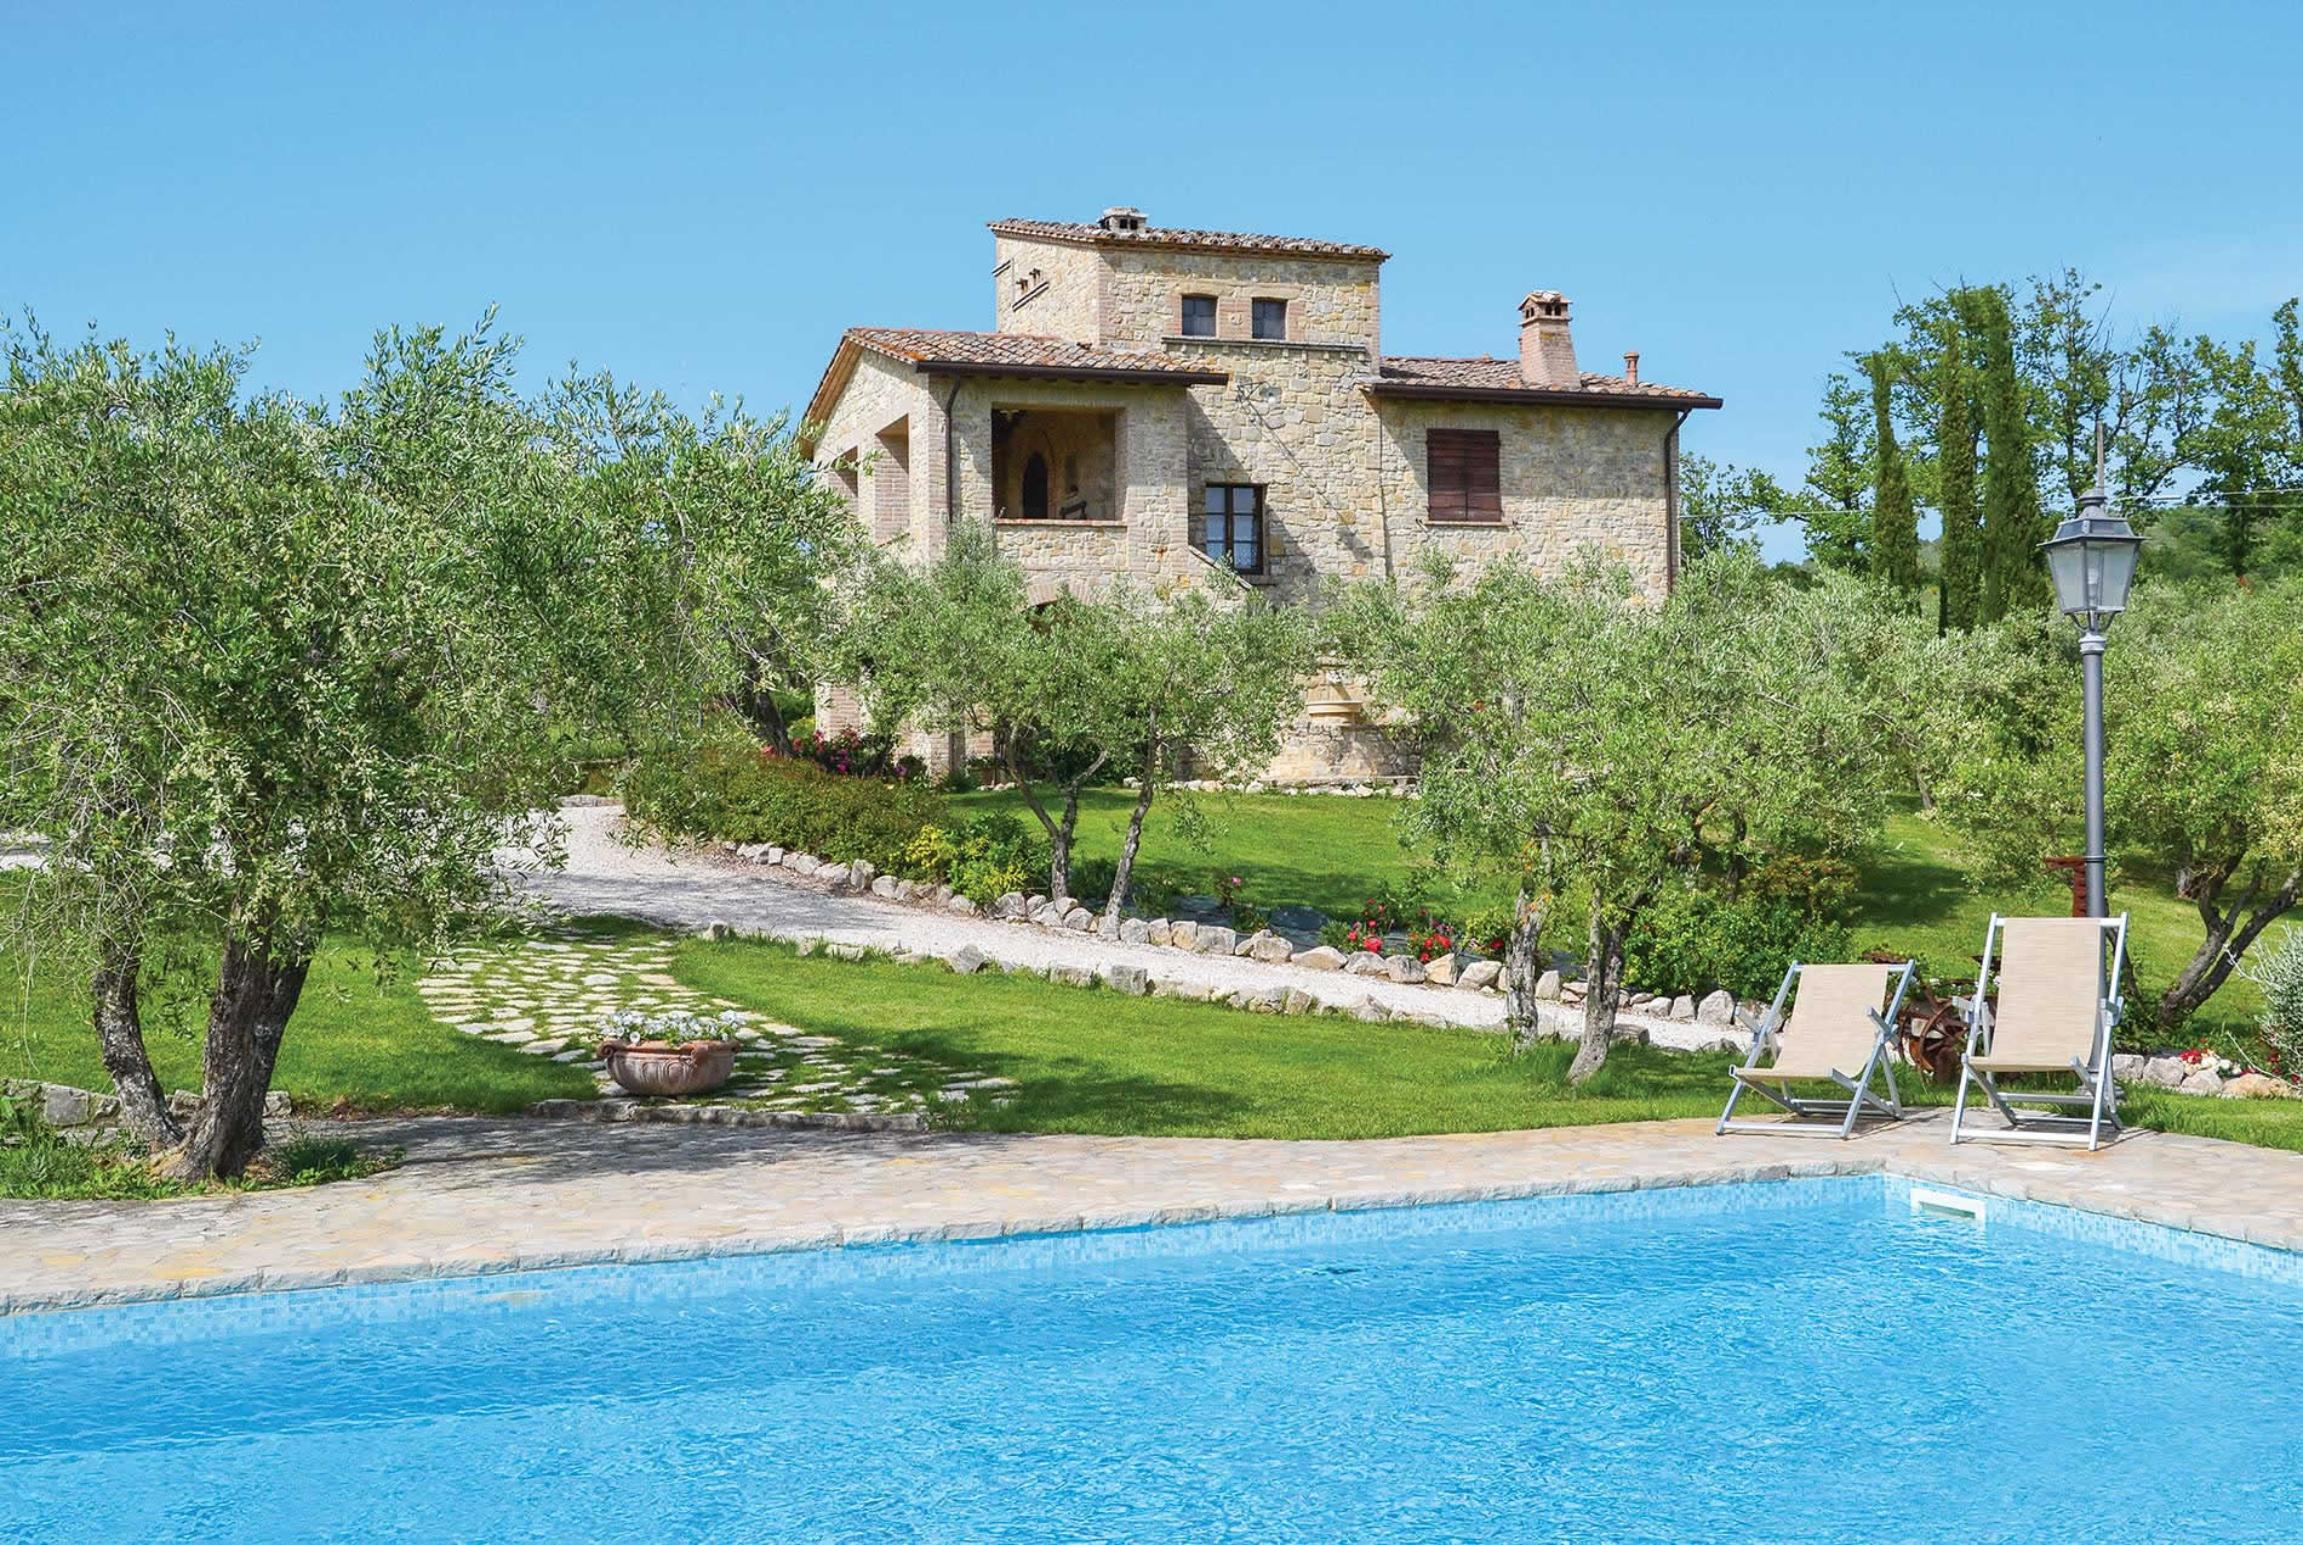 Read more about Le Rose villa